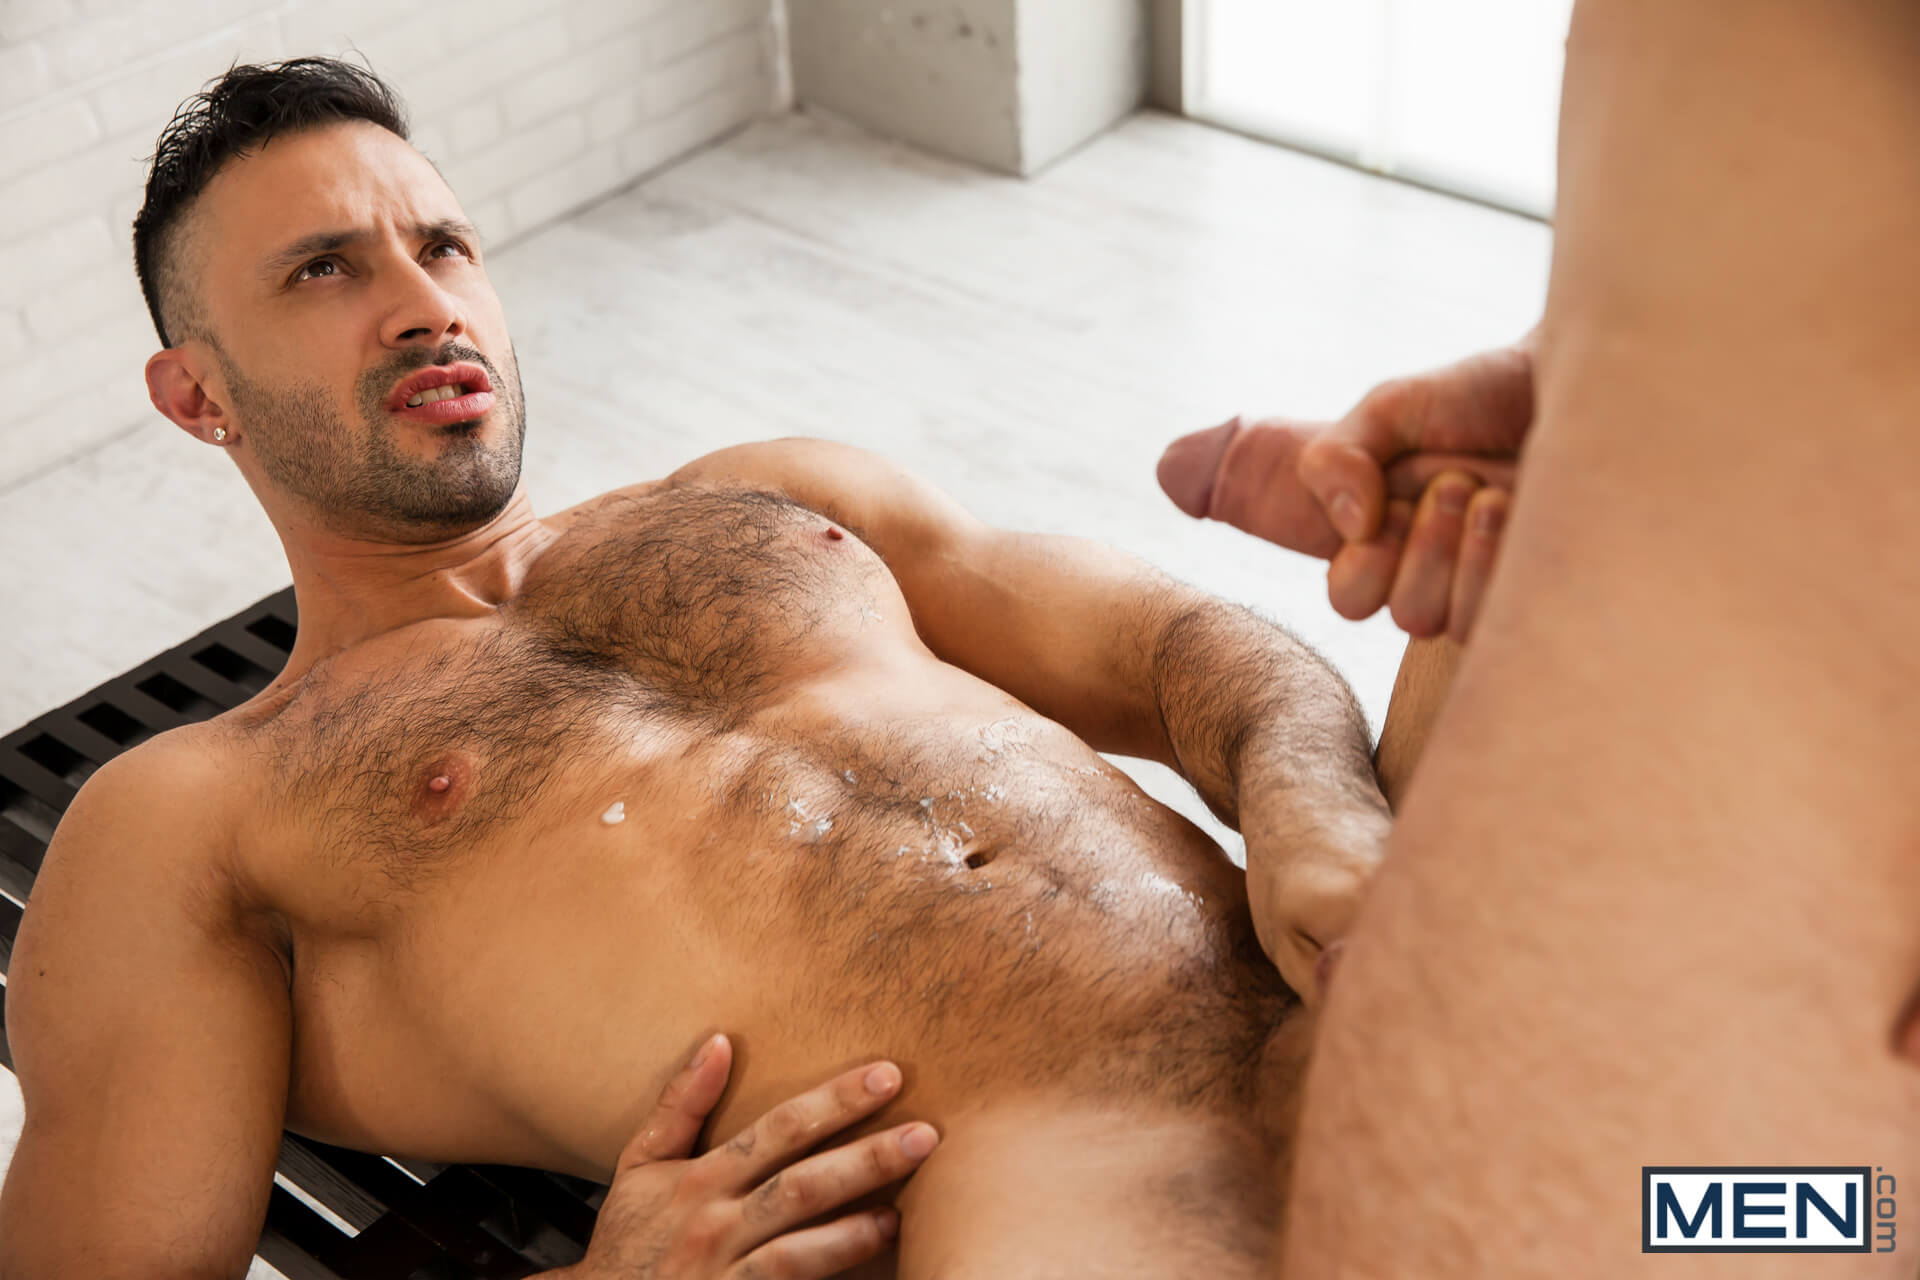 men drill my hole truth or dare part 3 flex jp dubois gay porn blog image 25